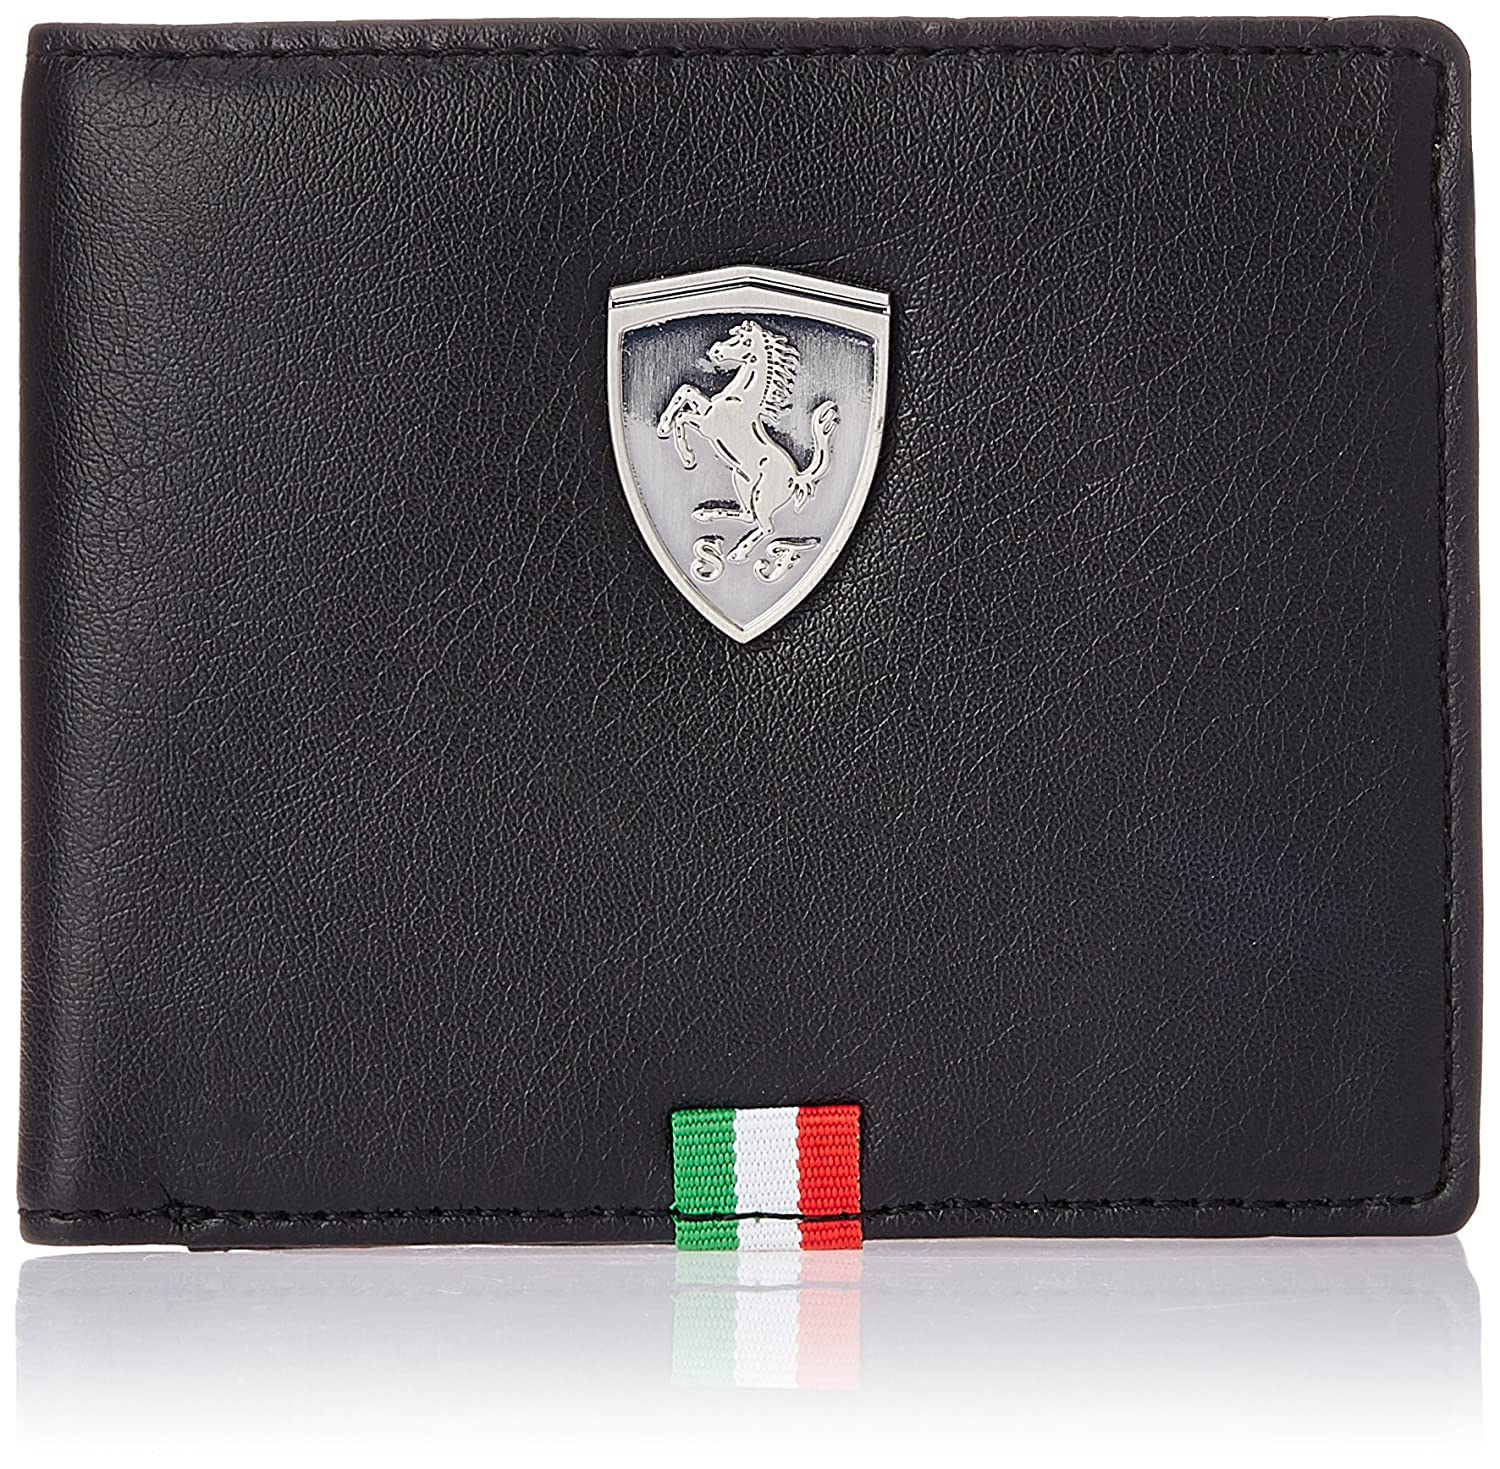 puma bmw wallet price